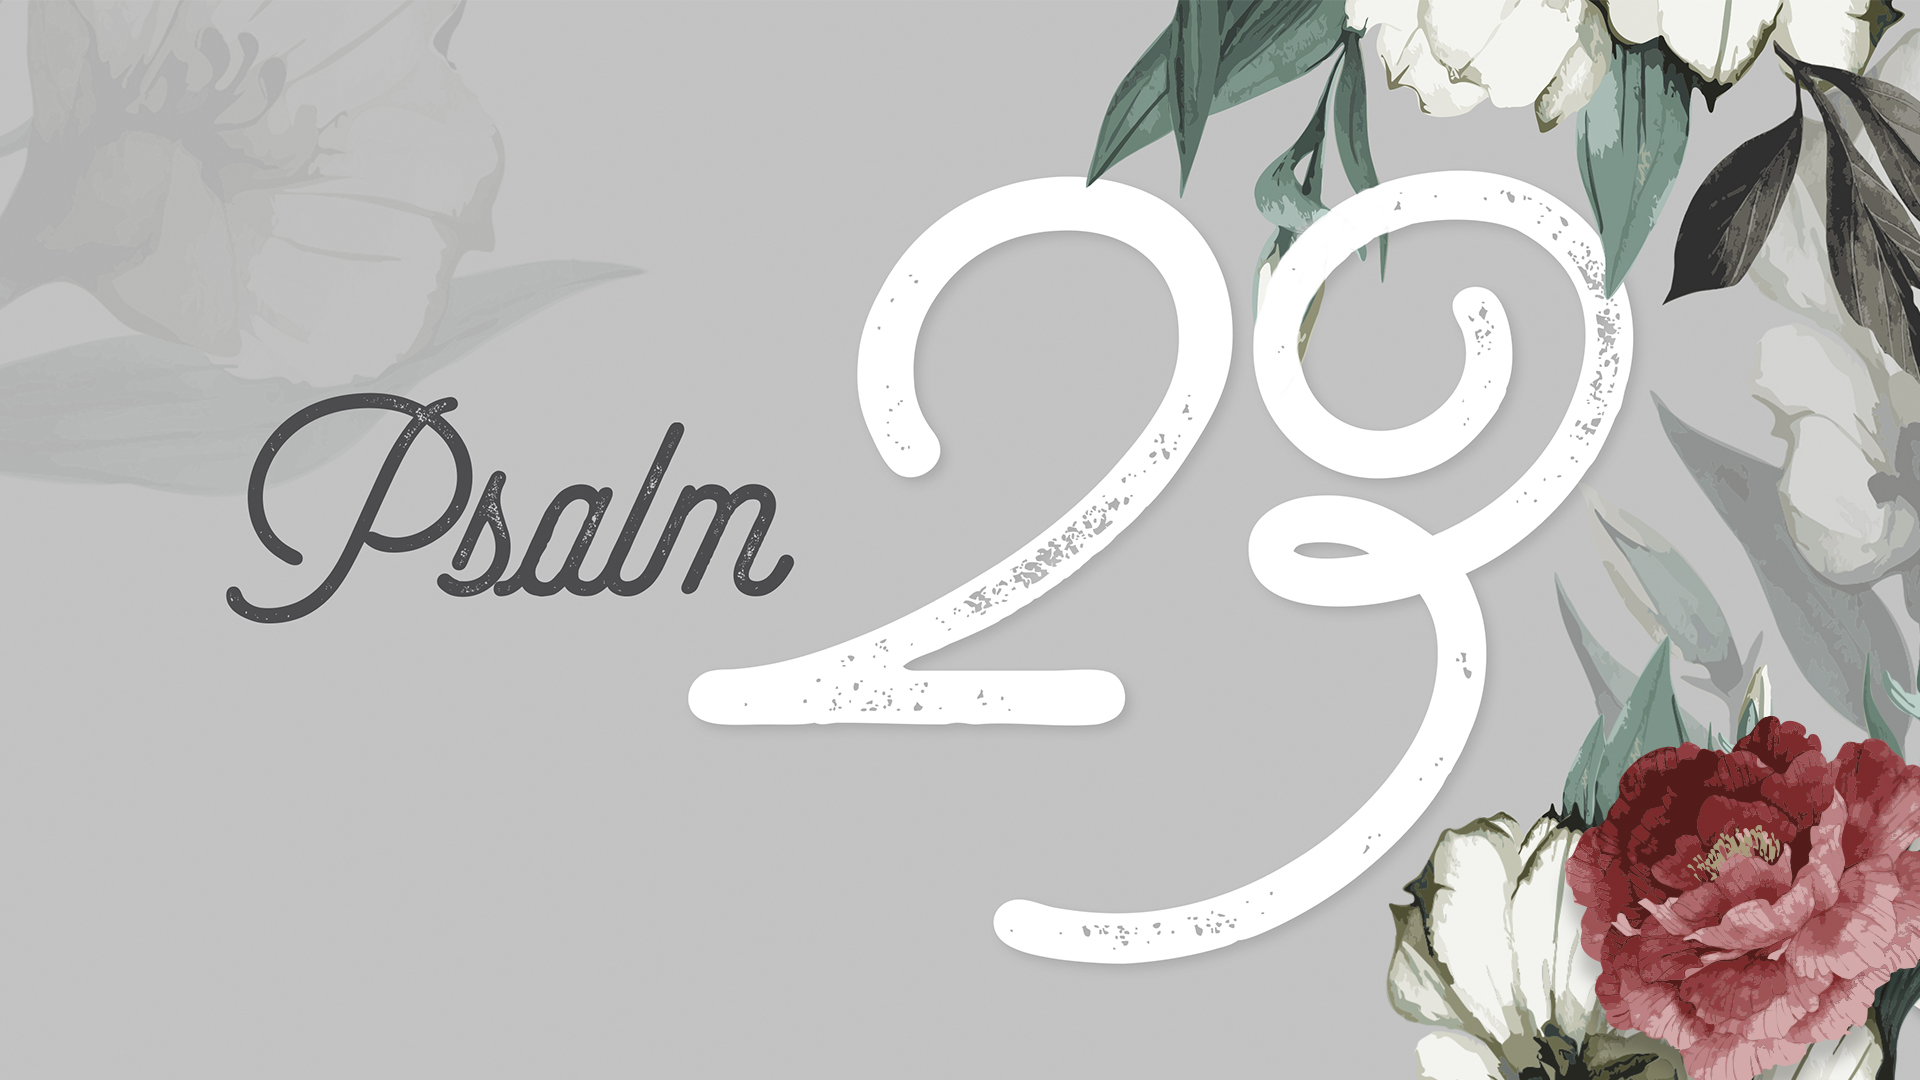 Psalm 23 Web Image Graphic.jpg